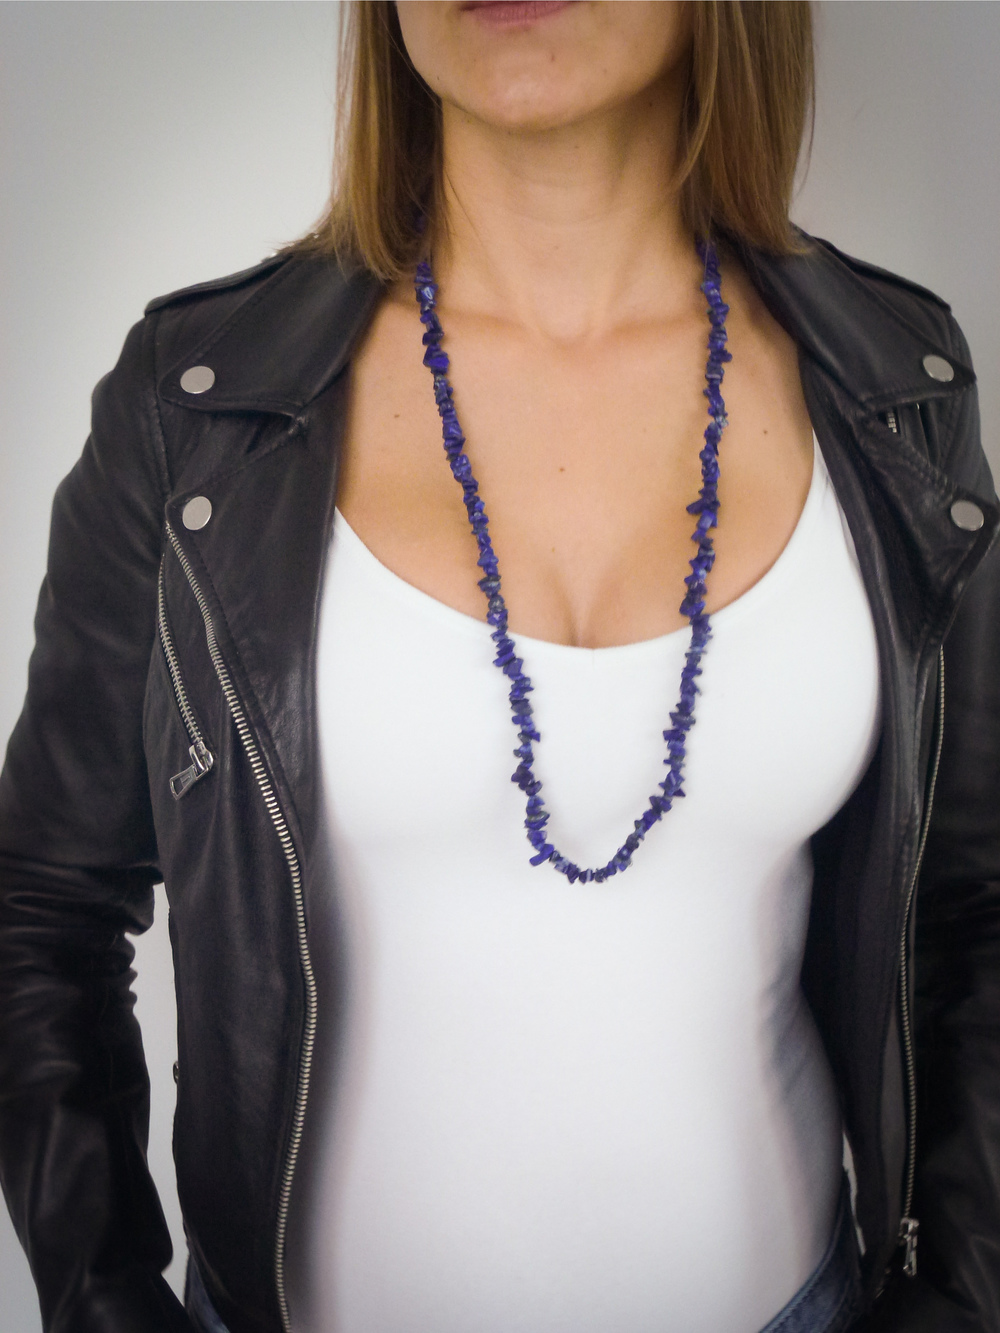 what is lapis lazuli used for